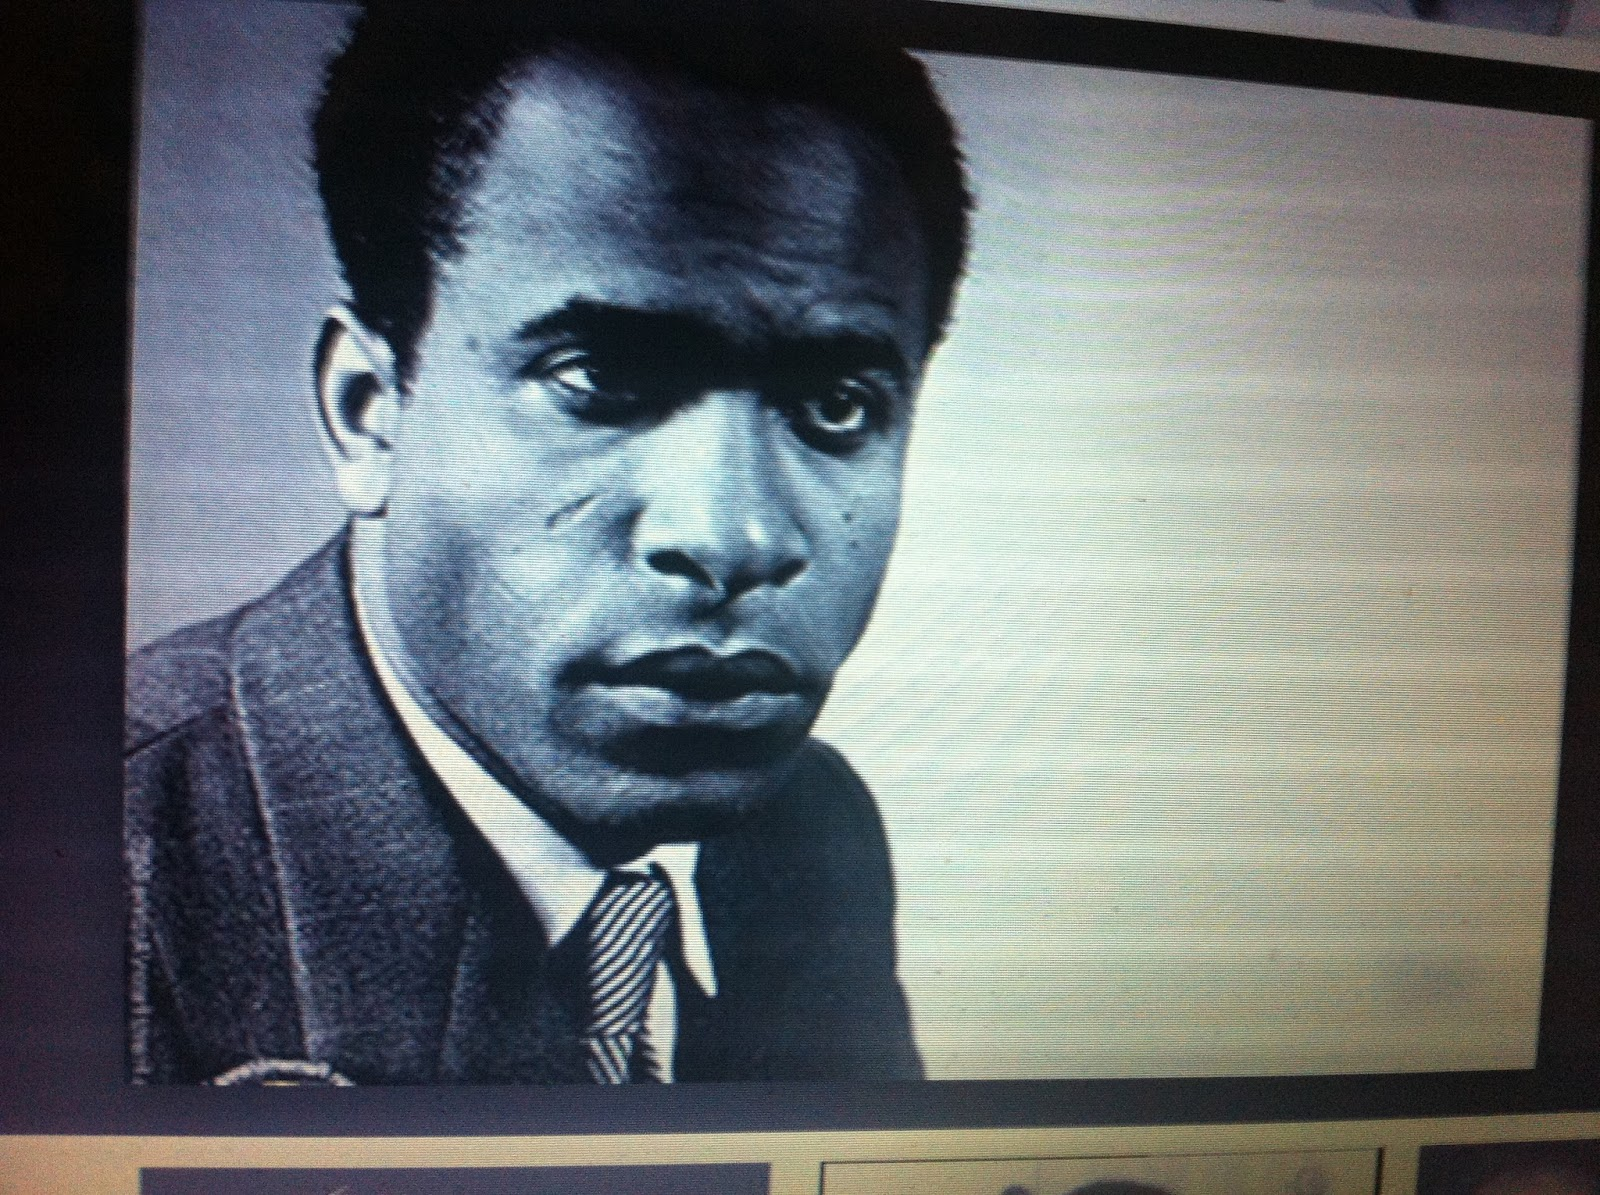 frantz fanon the wretched of the earth essay Essays the wretched of the earth frantz fanon was born in 1925 in french- ruled martinique  he wrote the wretched of the earth within the last year of his life.